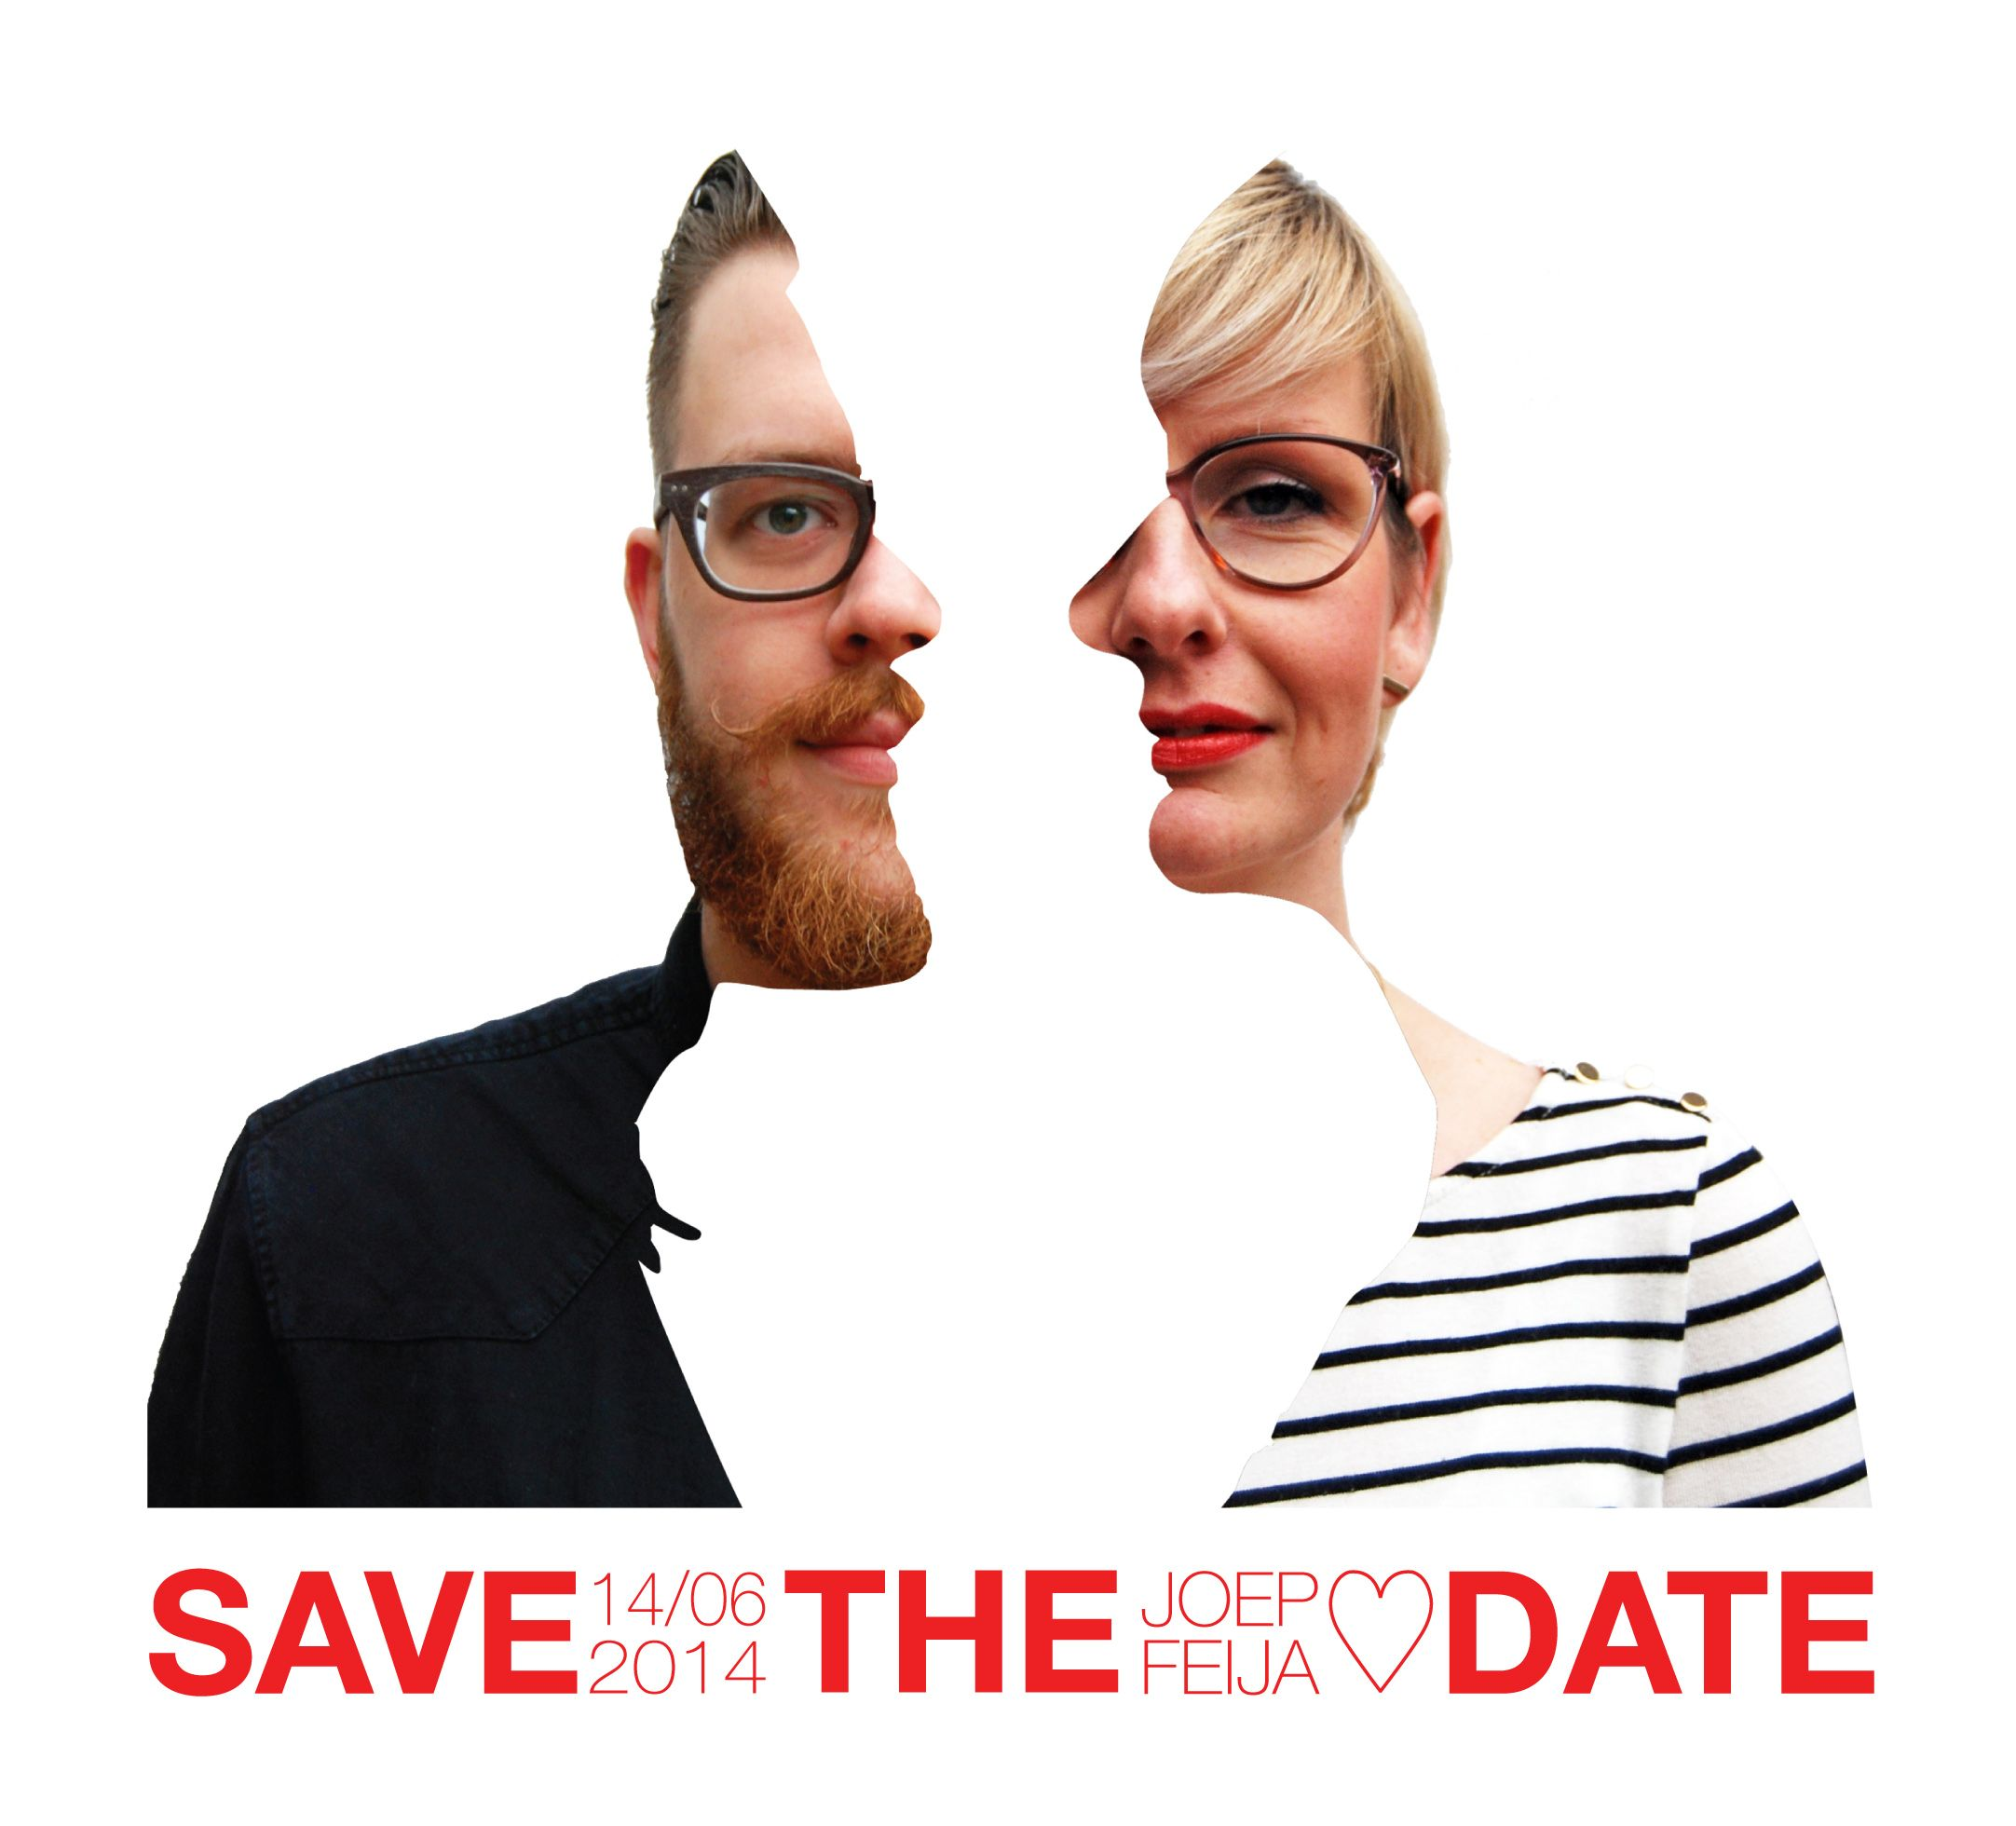 save the date  made by femkeroefs.nl